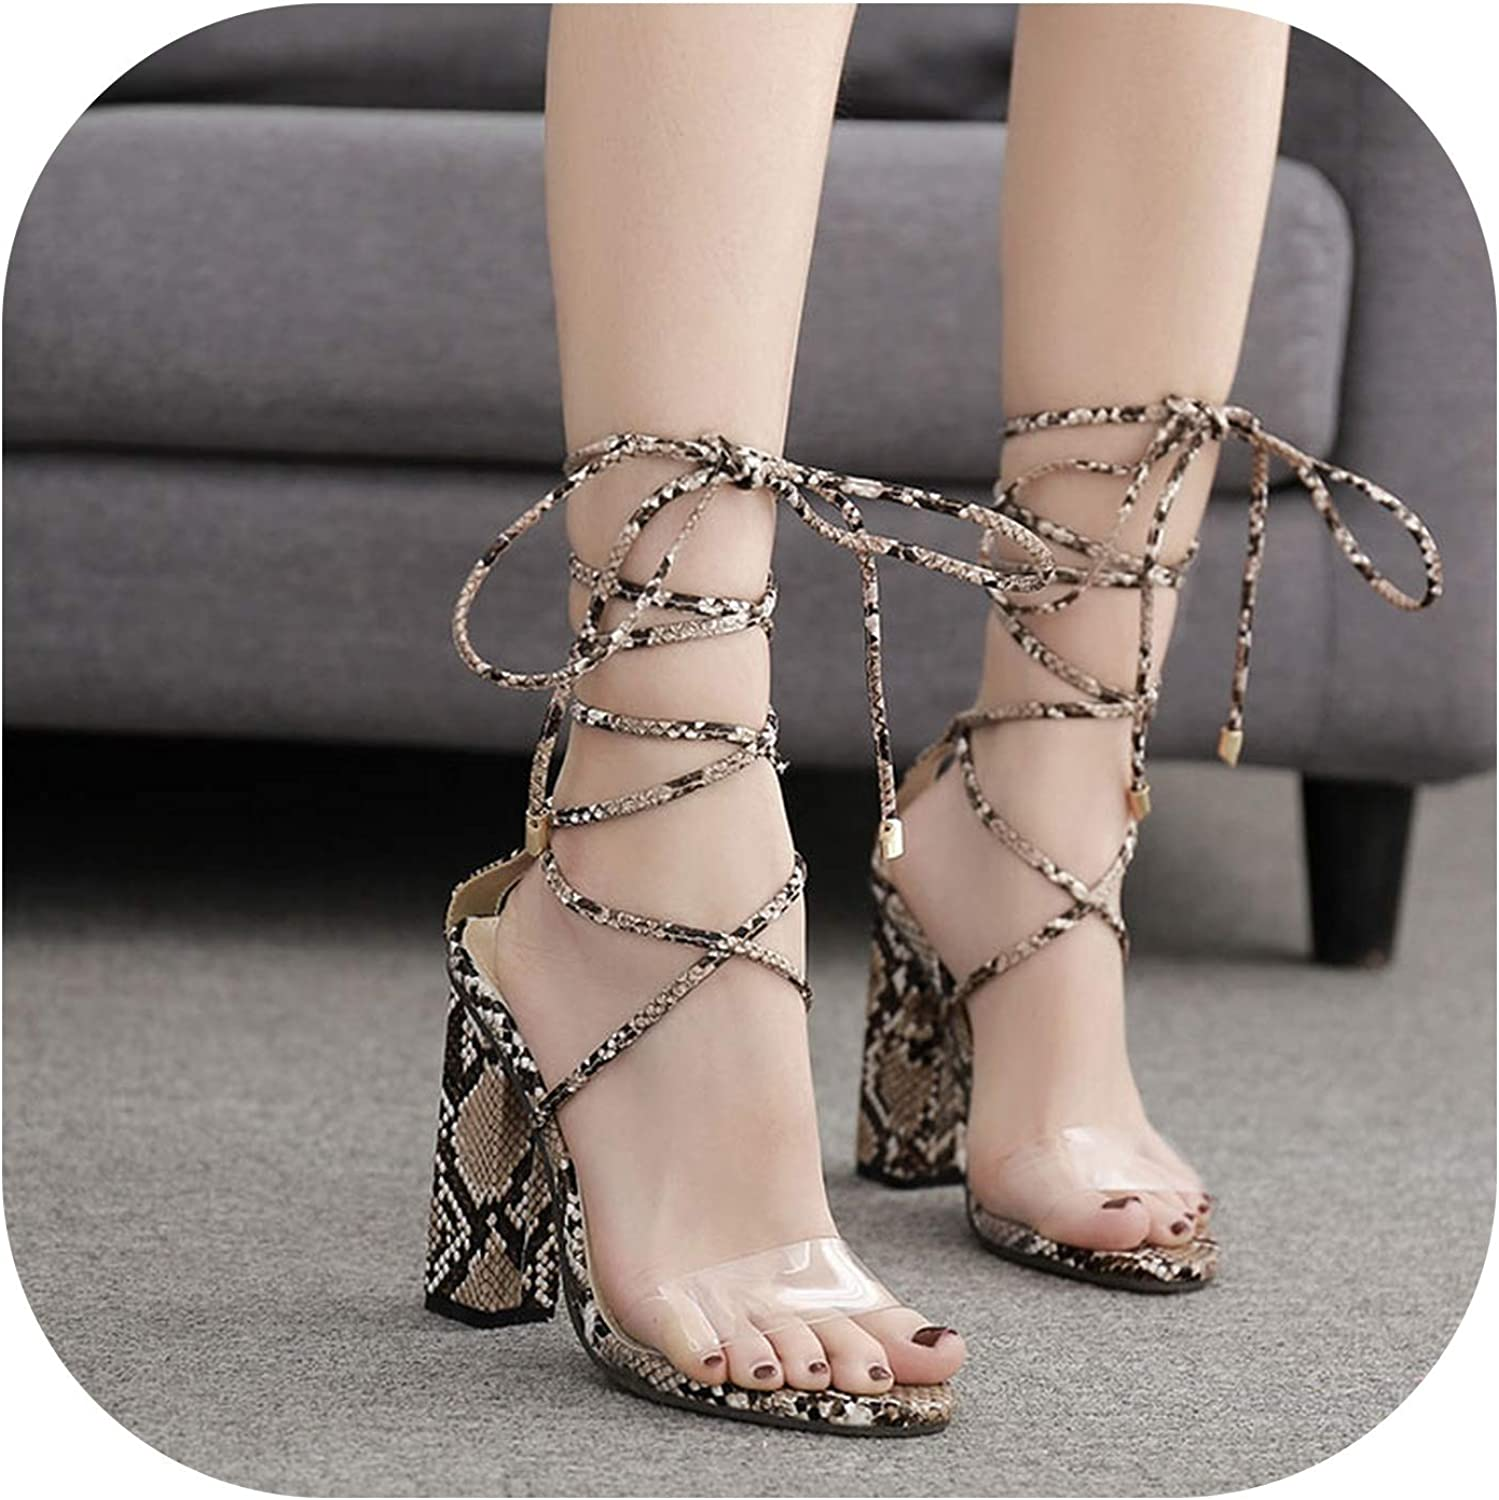 Shine-shine Lace-Up Block High Heels Cover Heel Shallow Mature Seentine Dance shoes Size 35-40